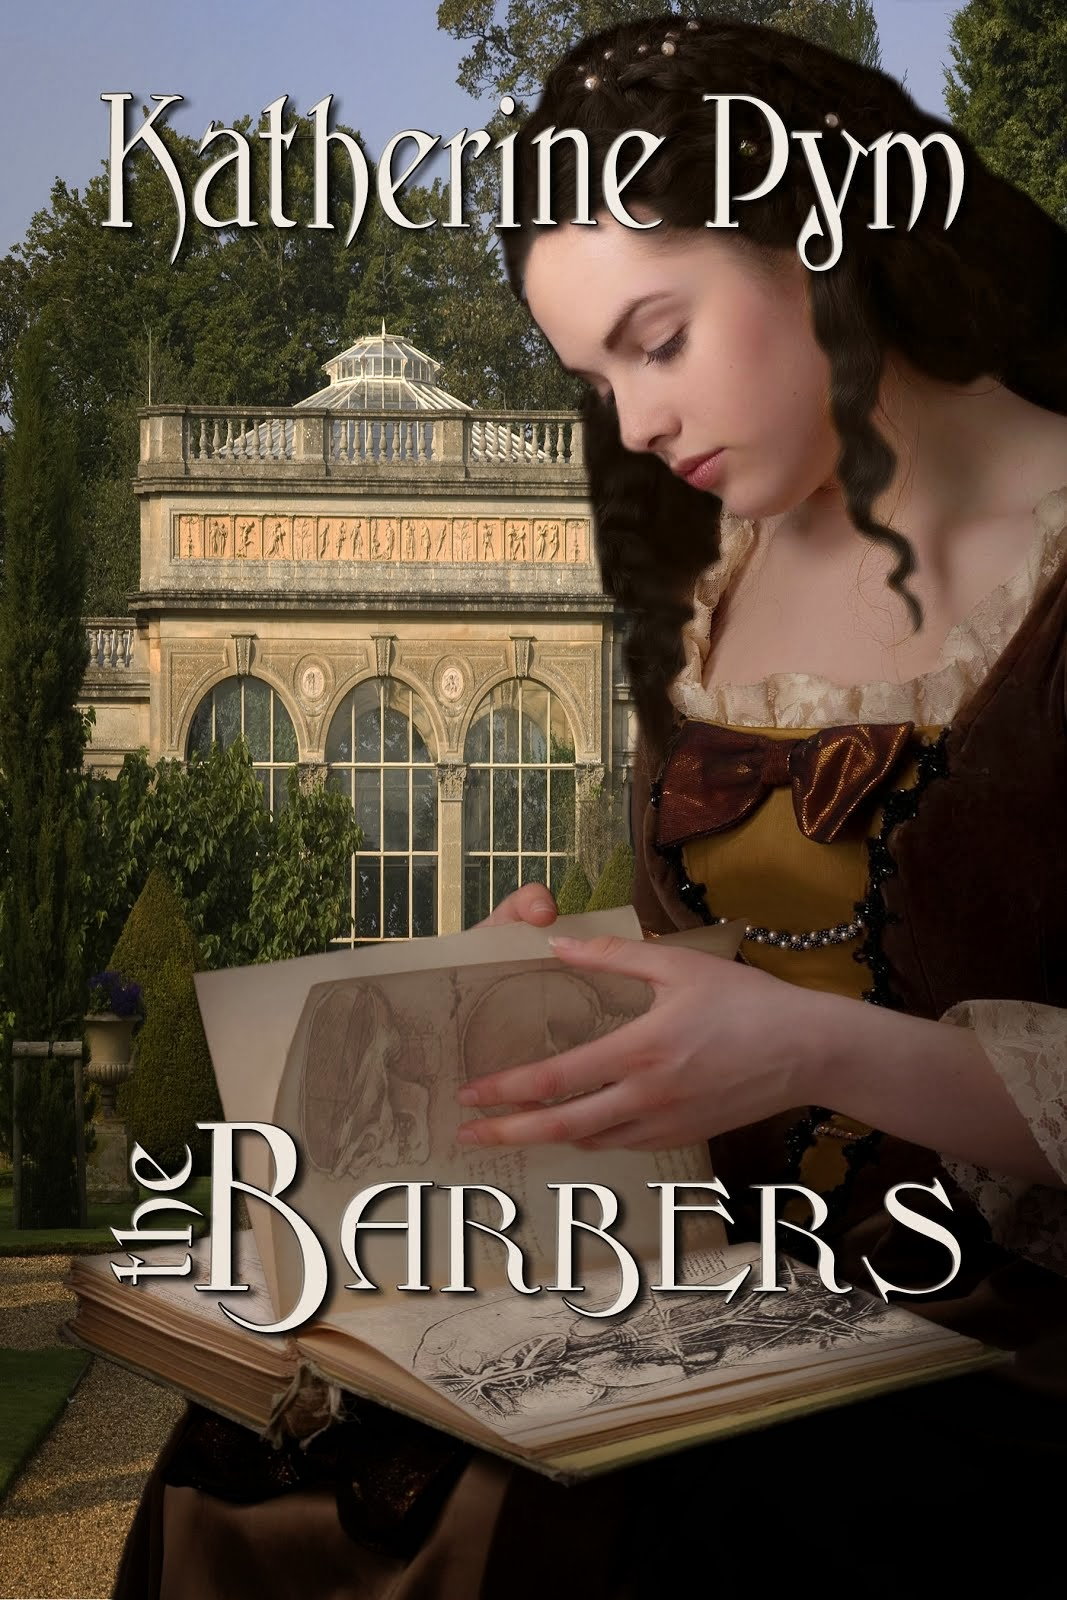 The Barbers (London 1663)